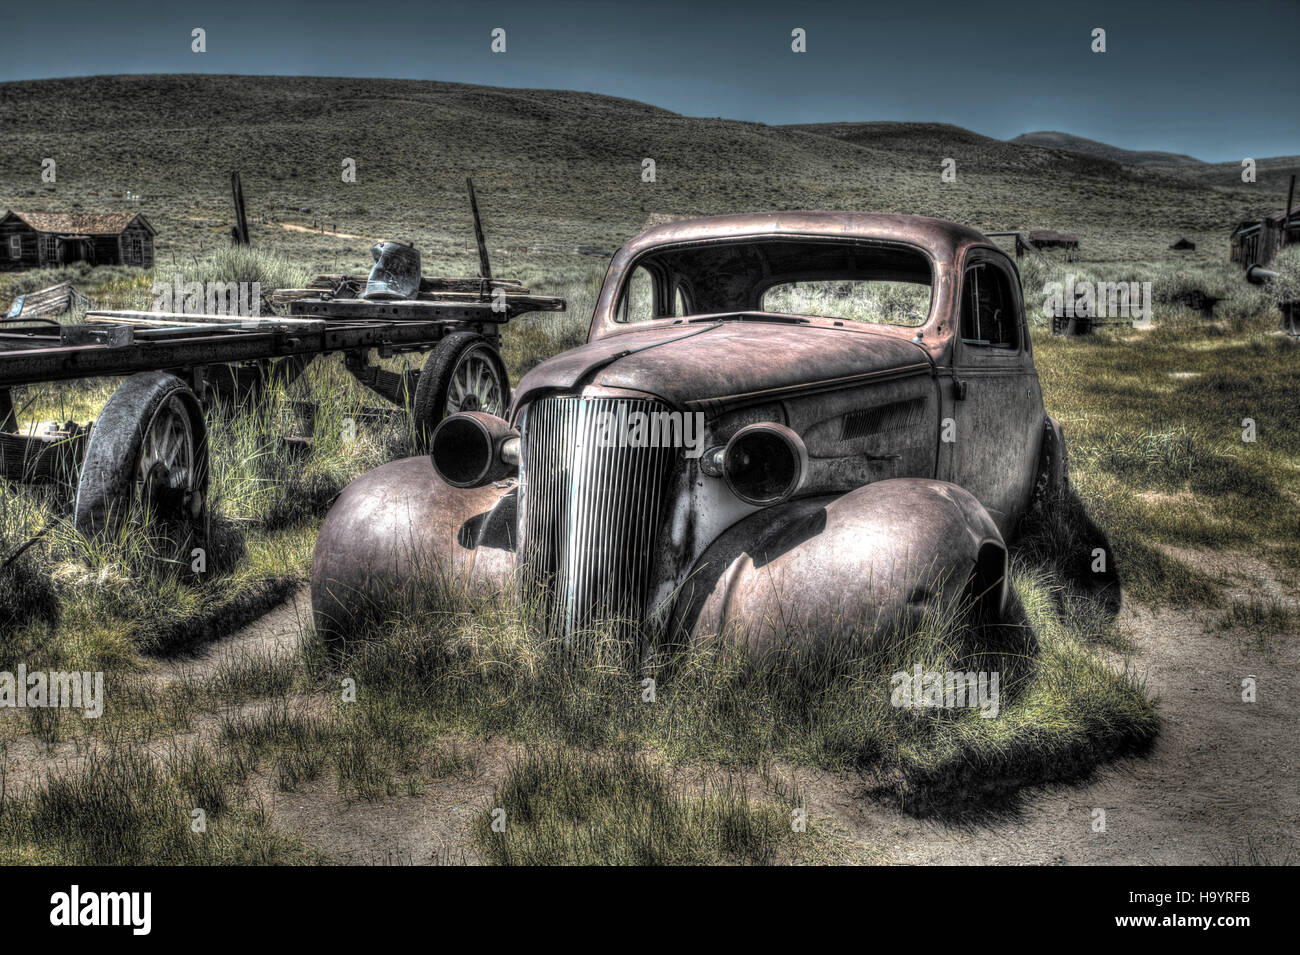 An abandoned rusty old 1930's car at Bodie Ghost Town, California - Stock Image